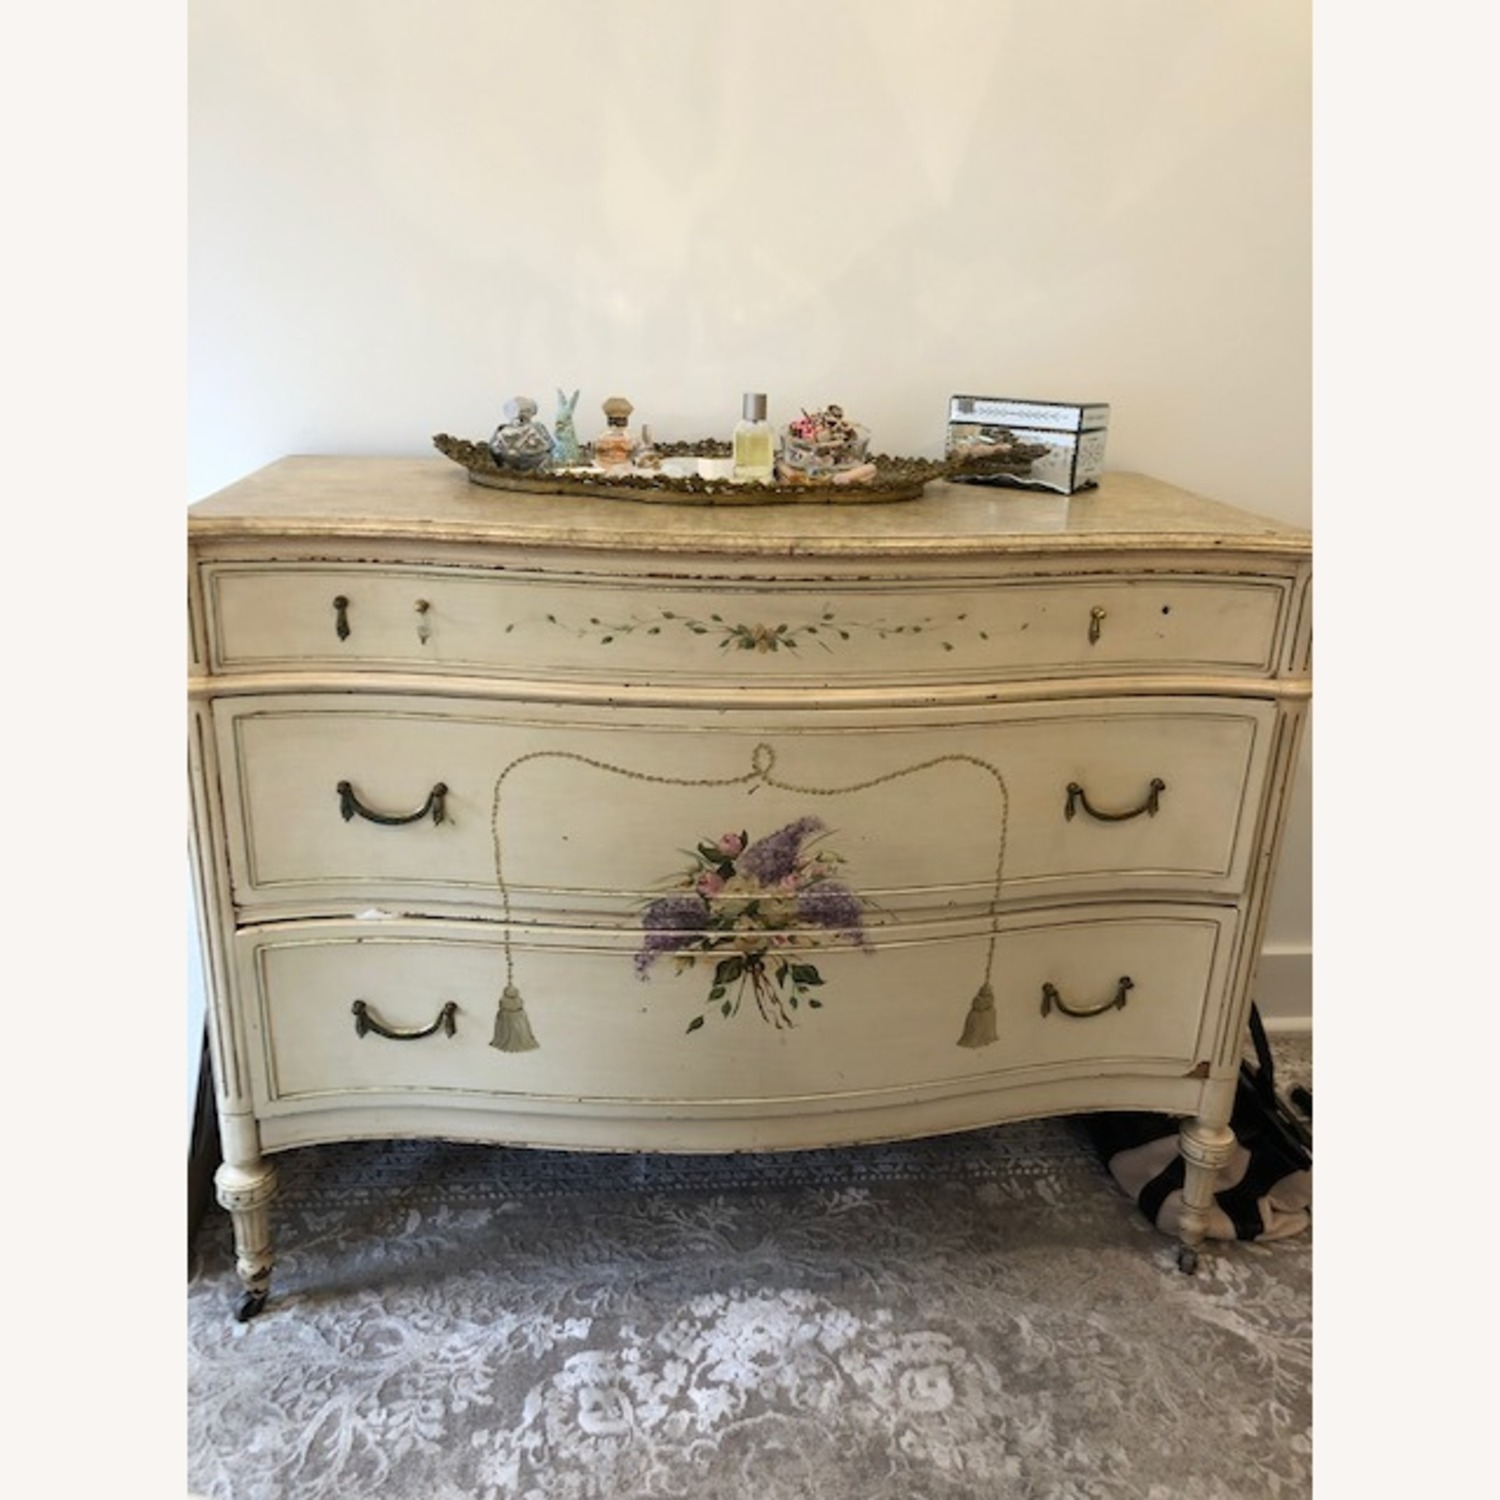 Antique French Provincial 3 Draw Dresser - image-1